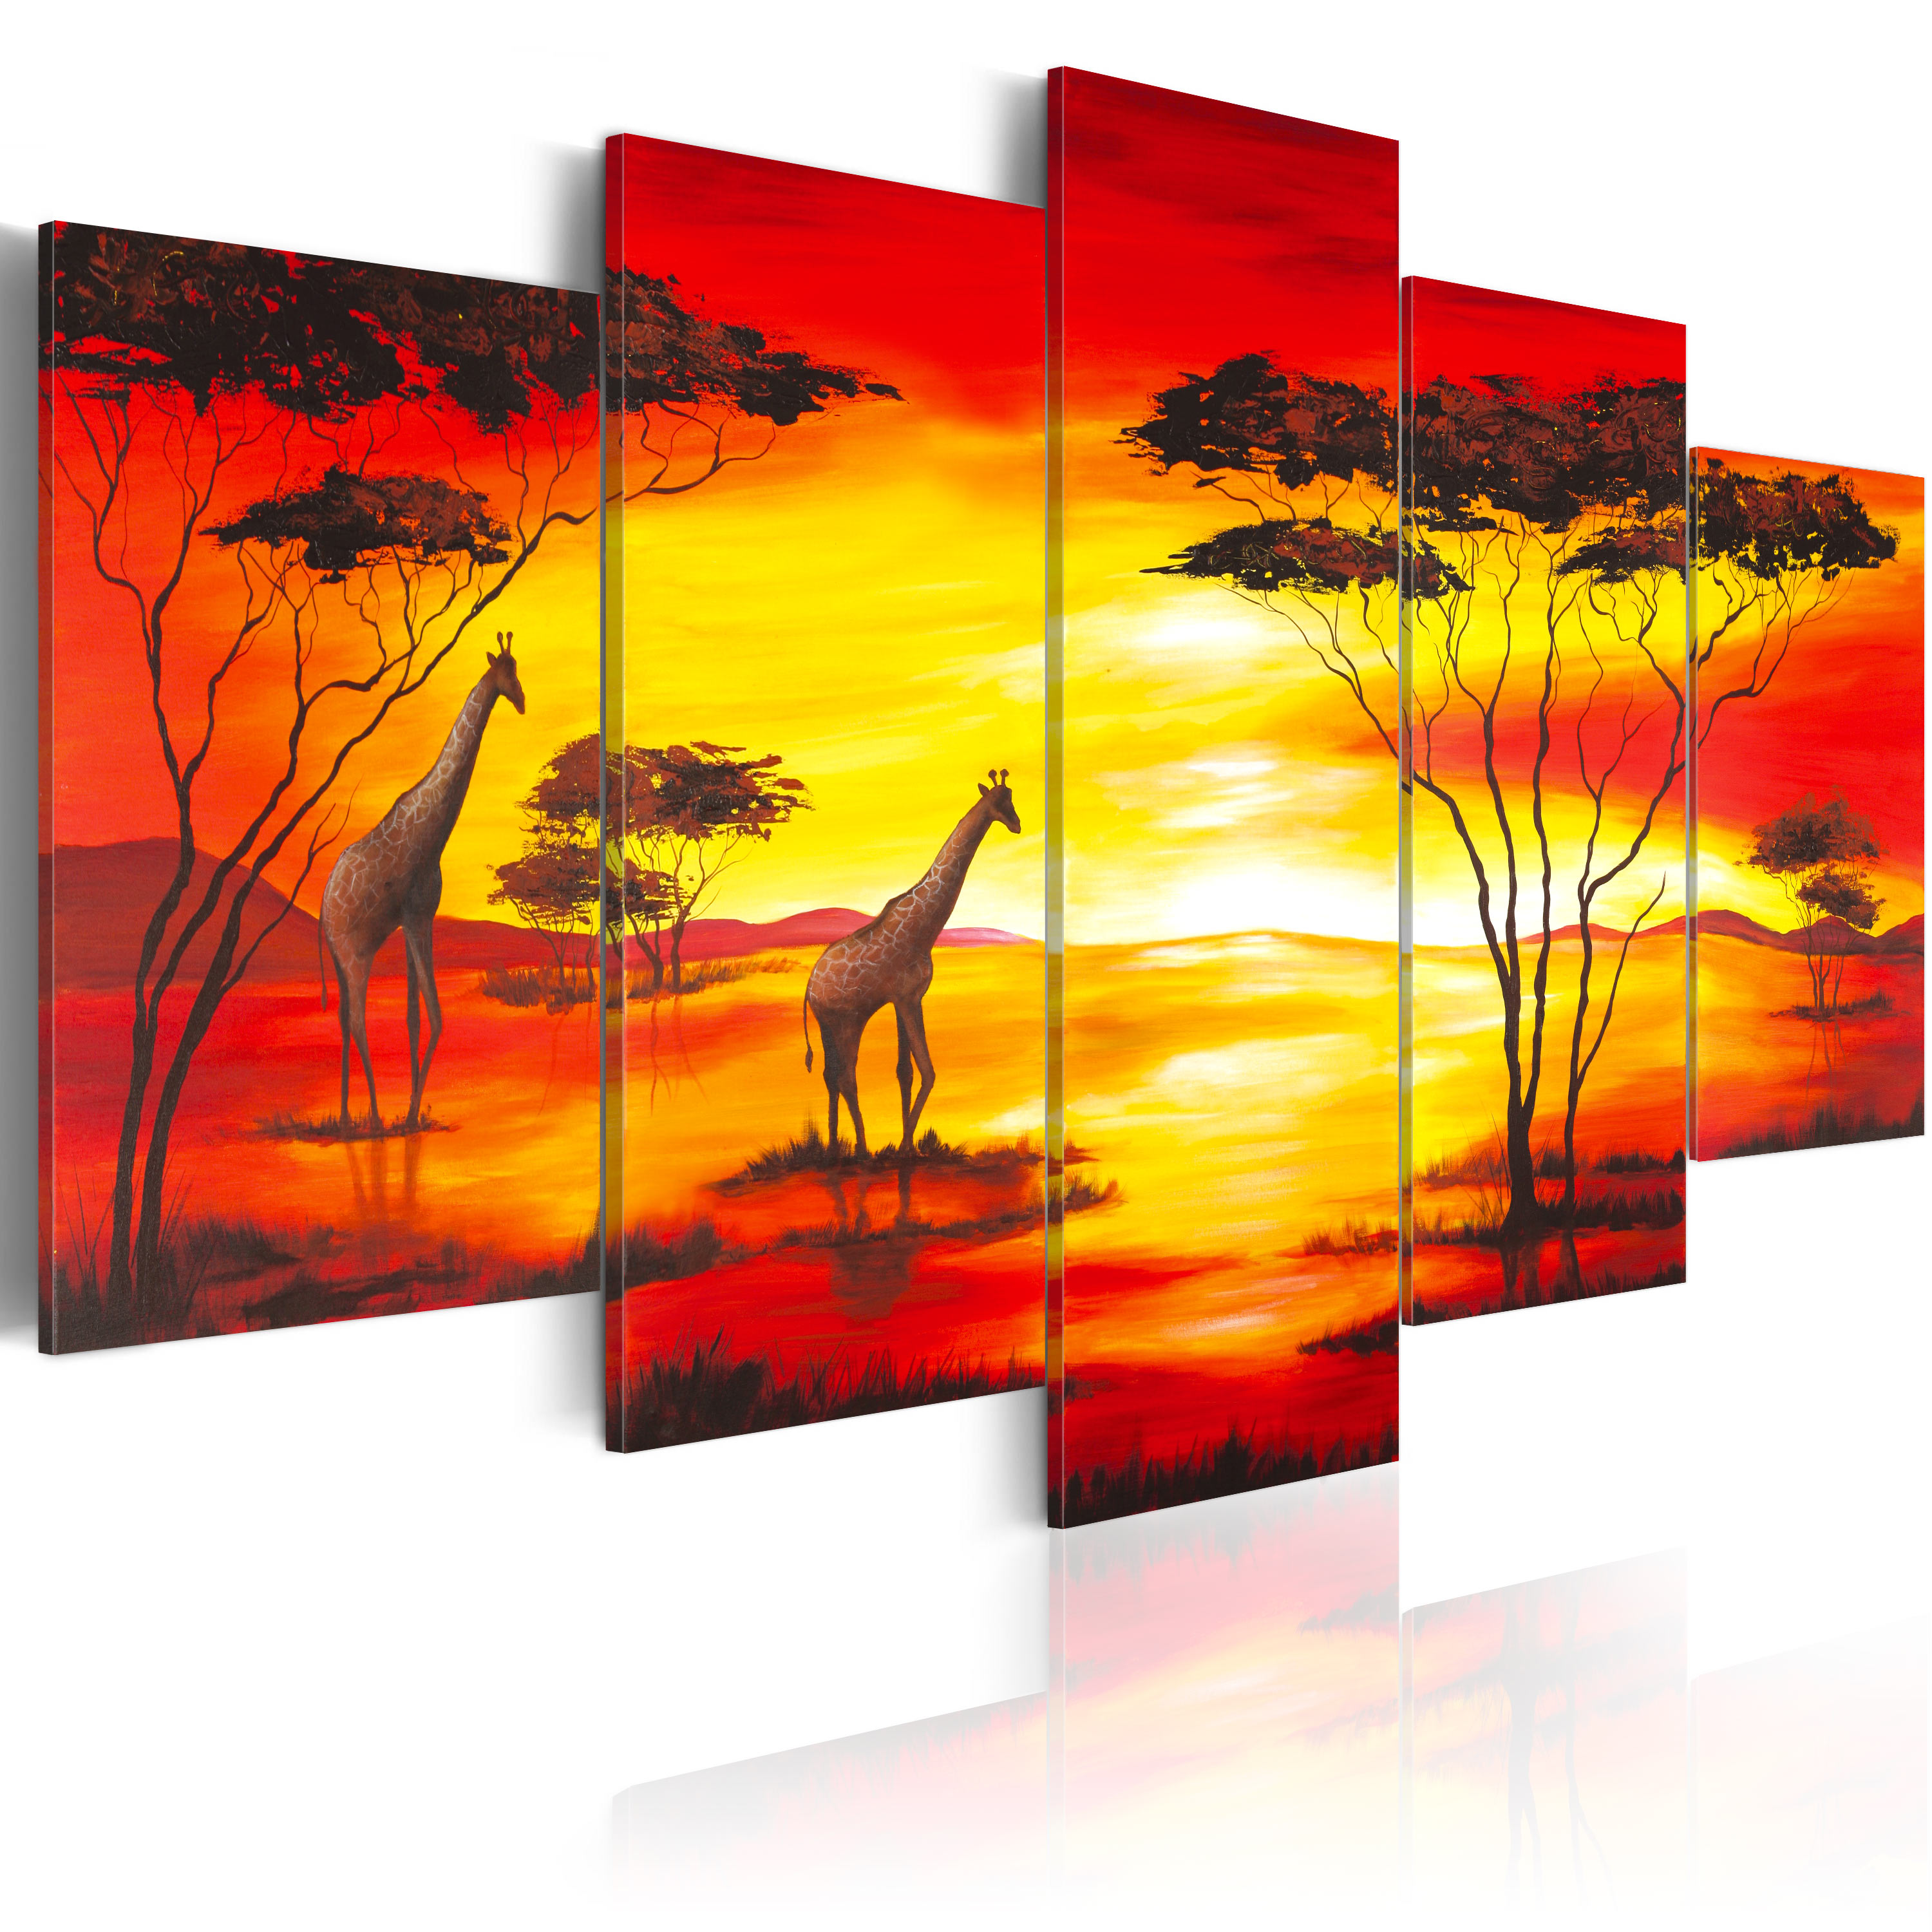 Obraz - Giraffes on the background with sunset 100x50